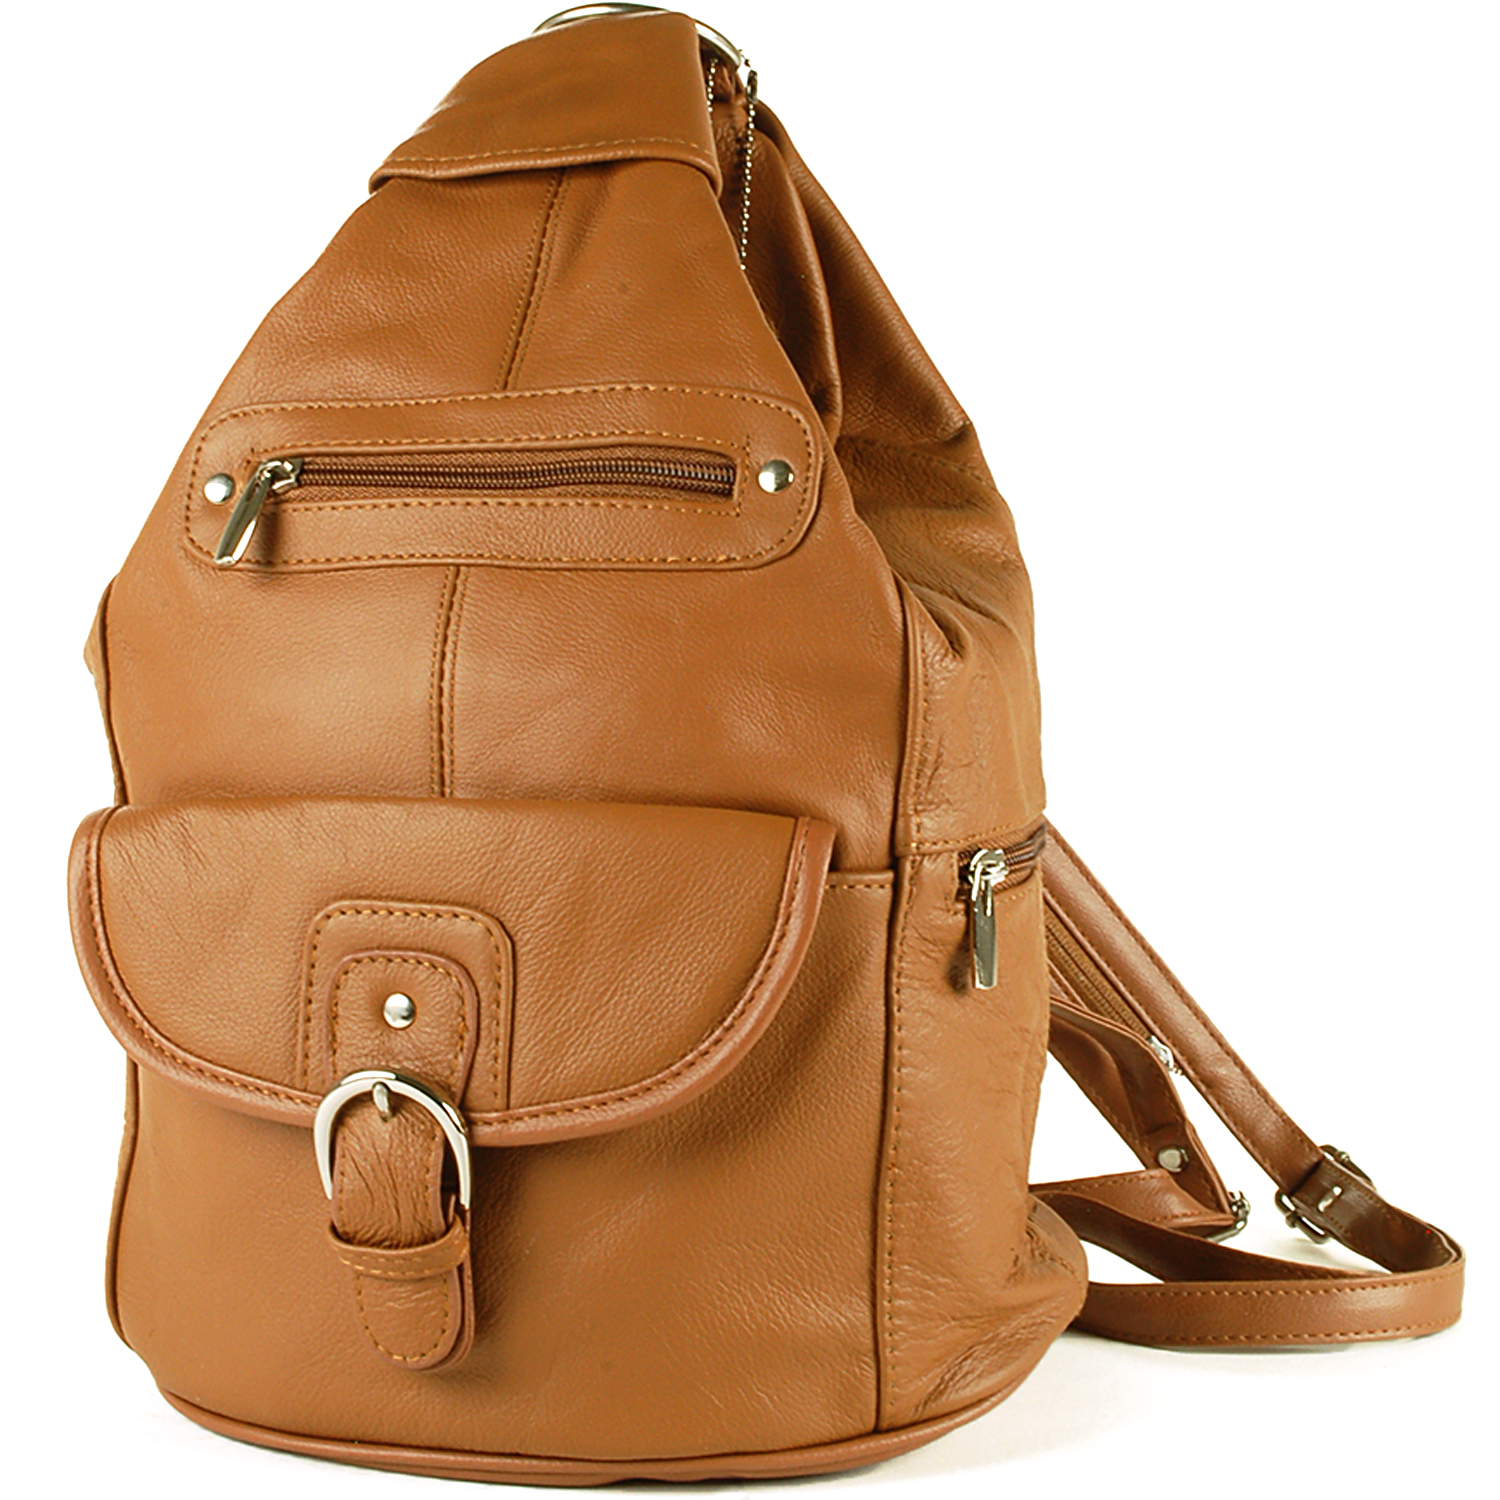 Leather Backpack Purse Lmw7yMQA